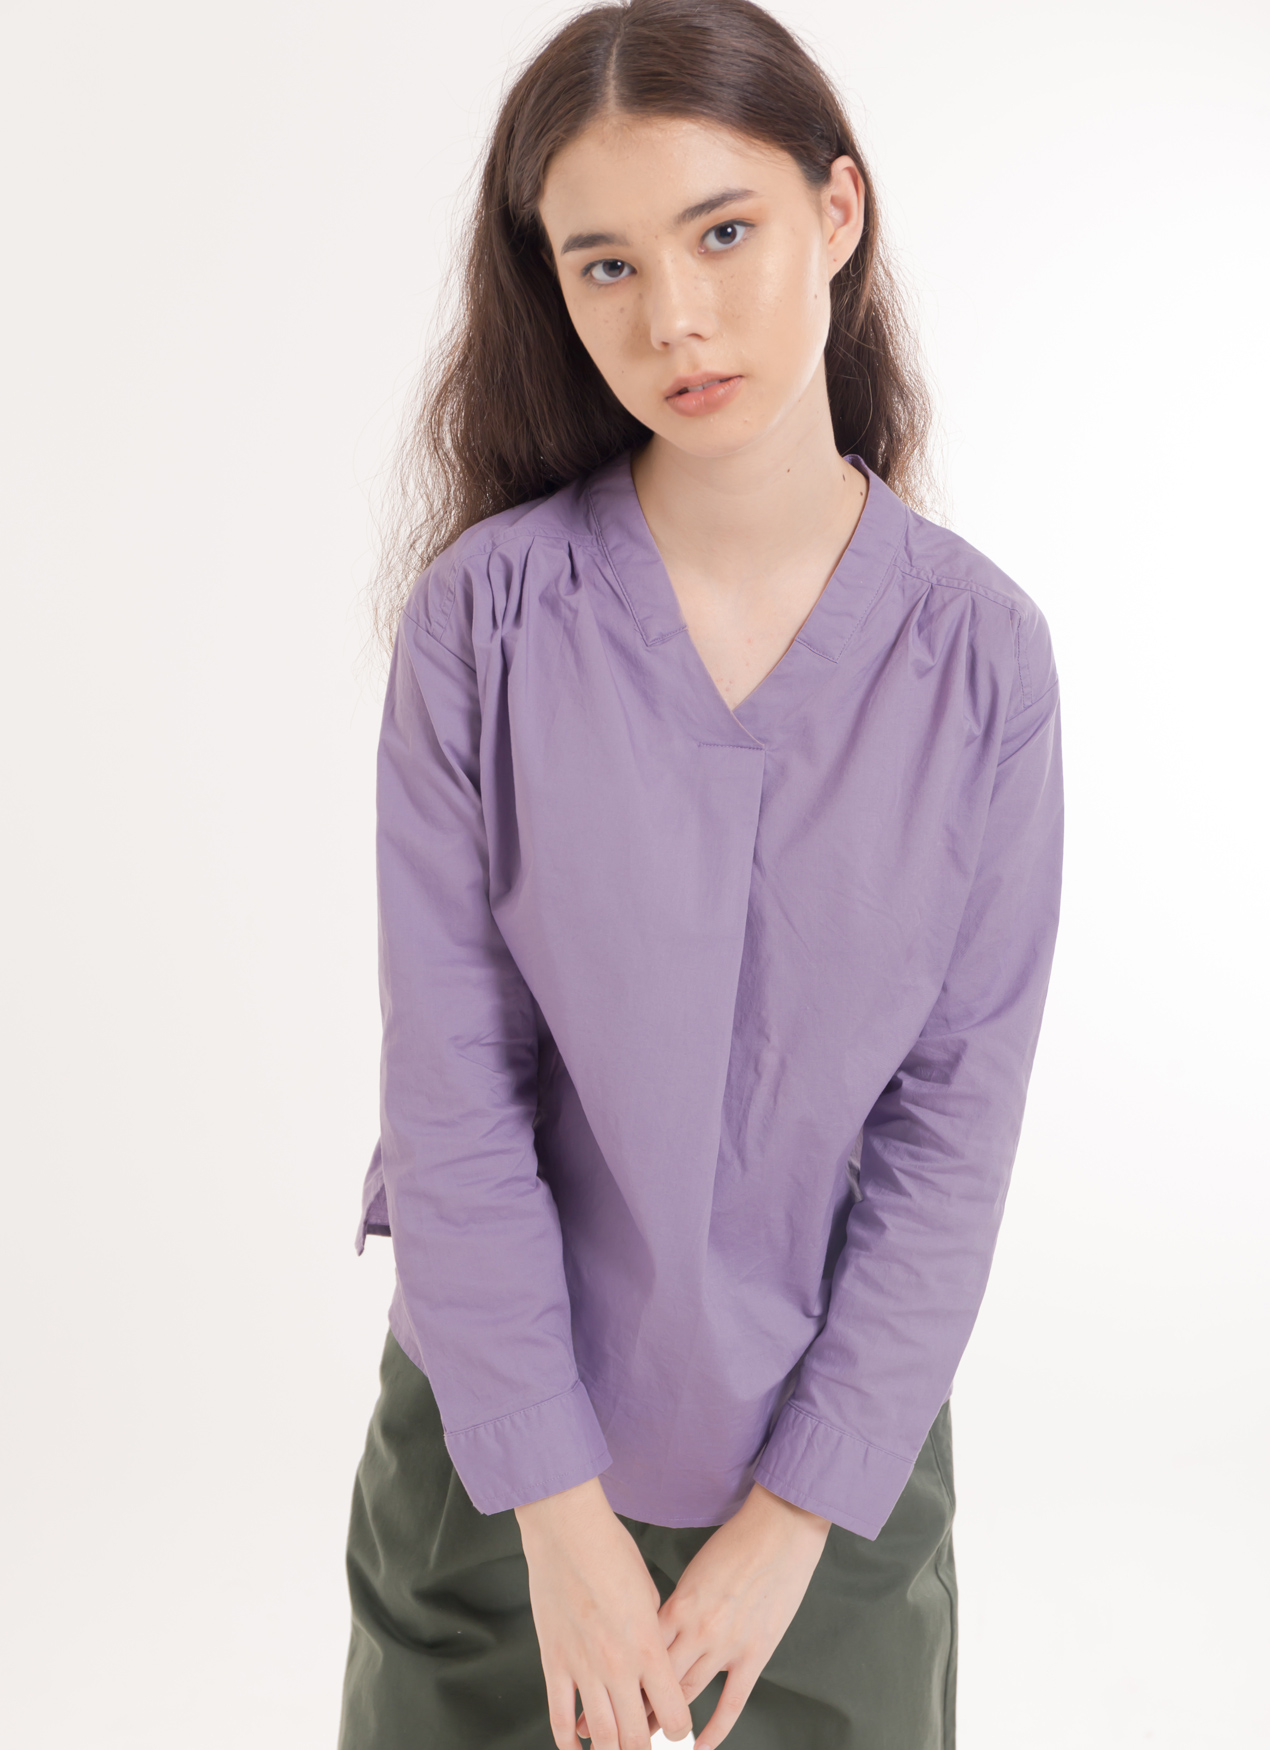 Sevendays Sunday Riri Shirt - Lavender